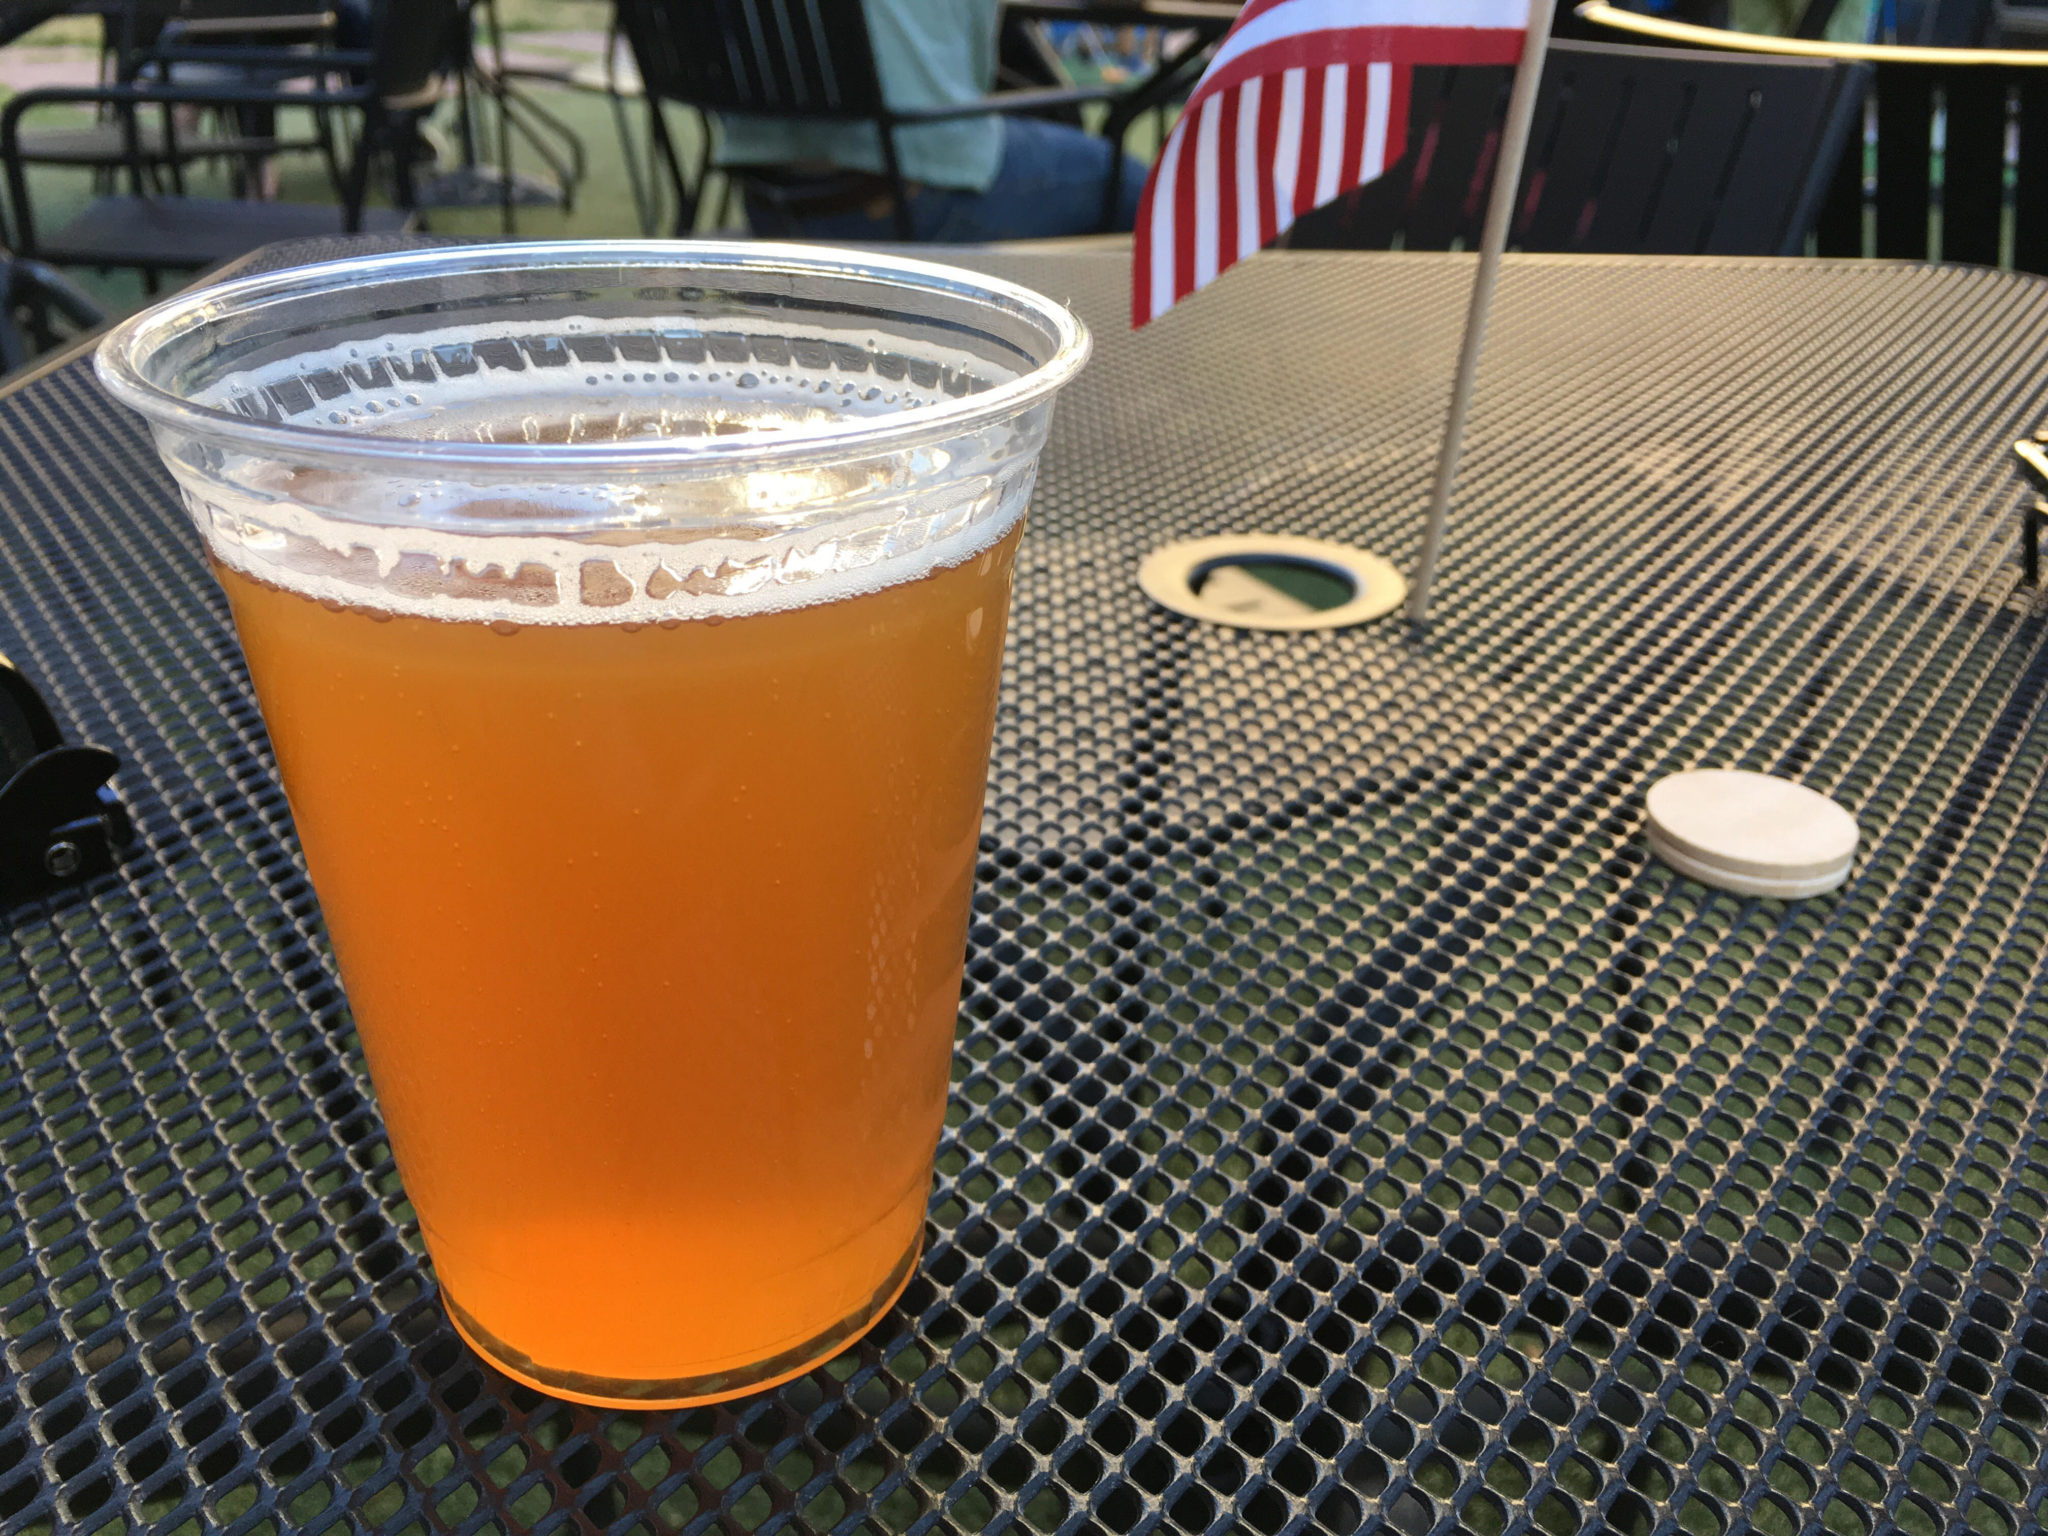 An Odell Drumroll American Pale Ale beer at the beer garden at Skyline Park in downtown Denver. (Dave Burdick/Denverite)